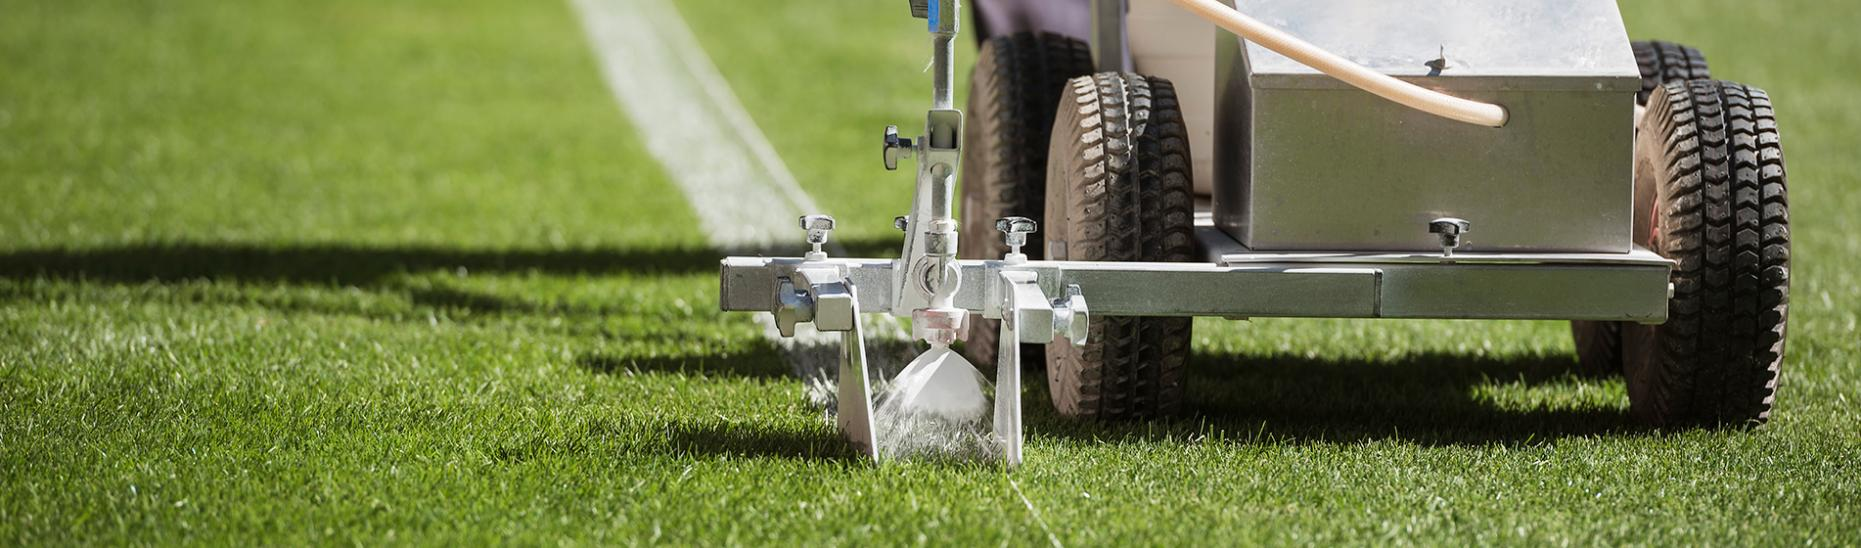 Marking the field with paint